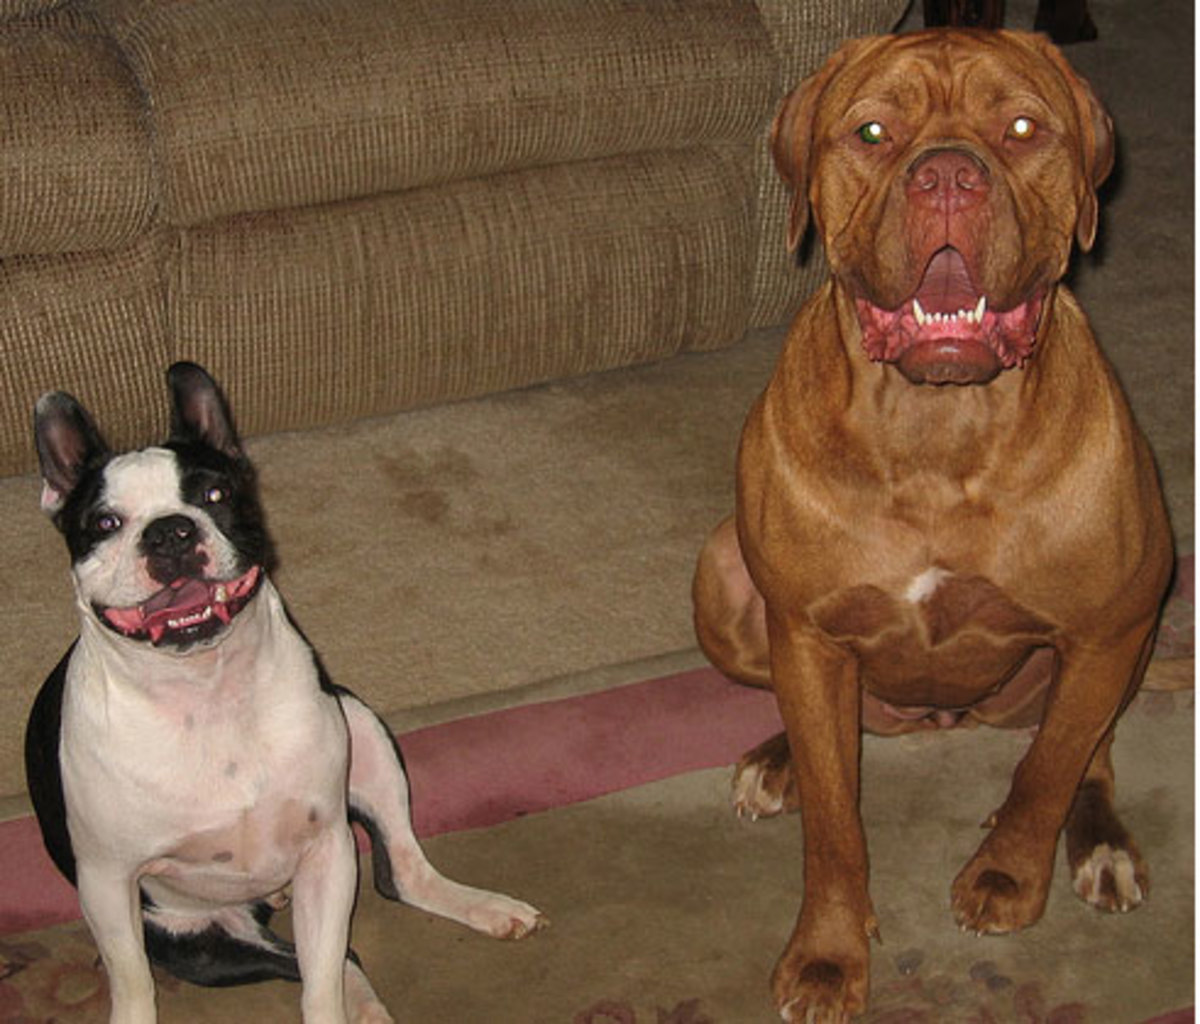 French Bulldog (left) and French Mastiff (right)